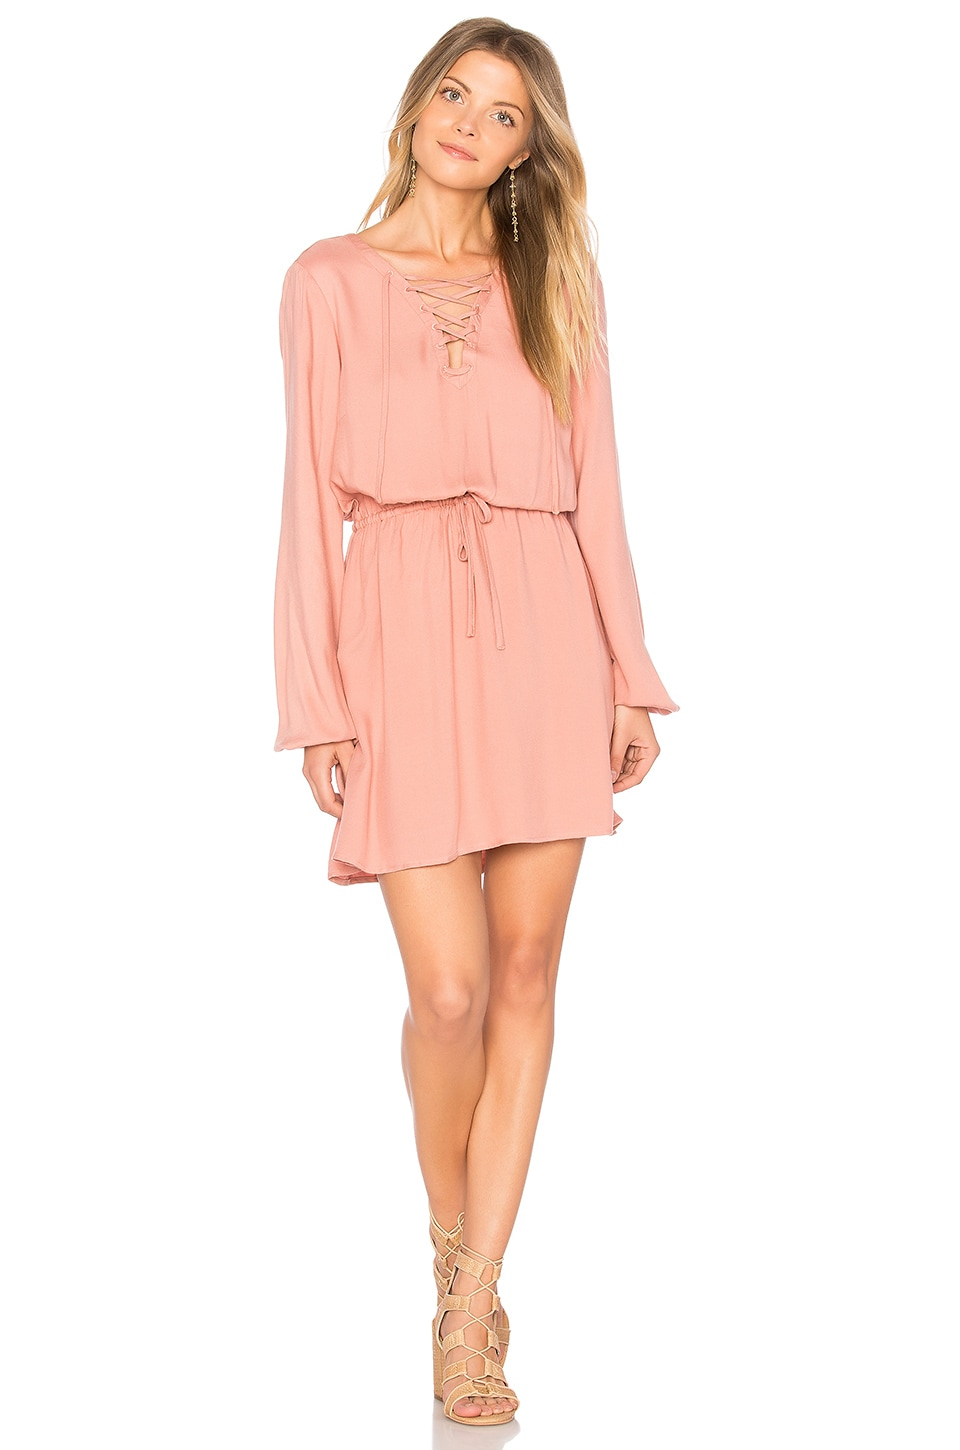 BB Dakota Jack by BB Dakota Char Dress in Rose Dawn